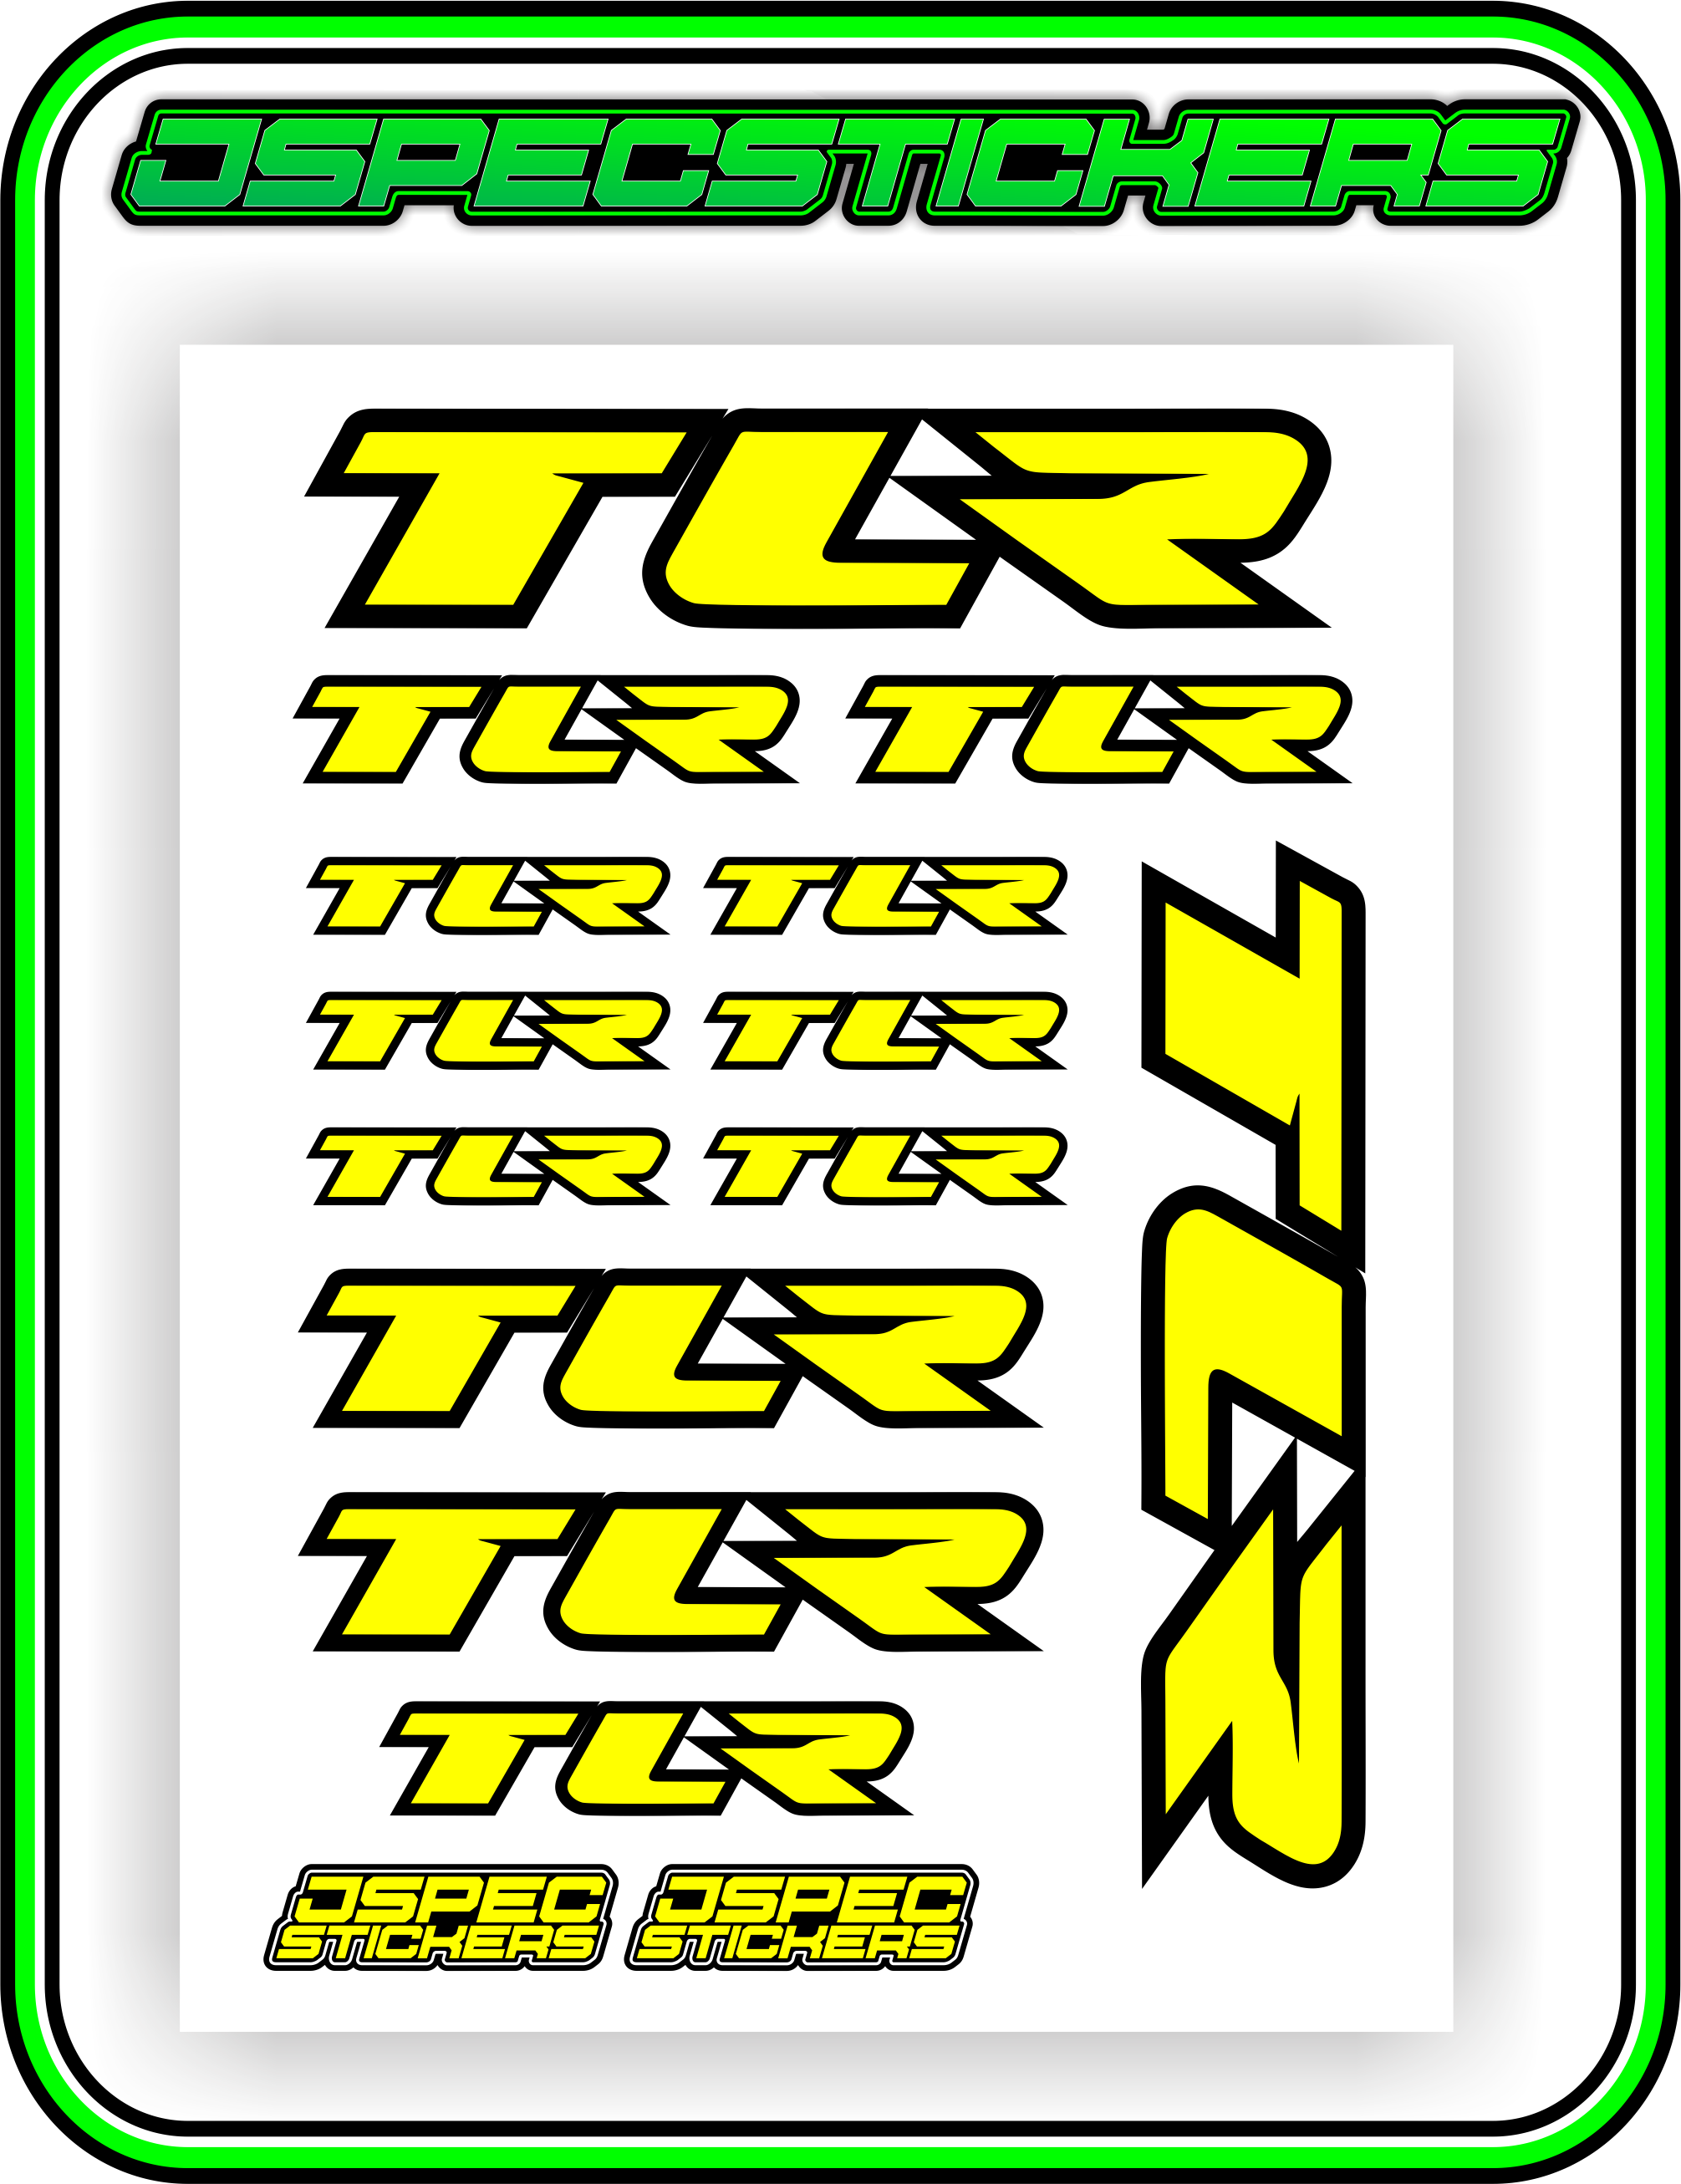 TLR LOSI RACING STICKER SHEET A5 - Jspec Stickers